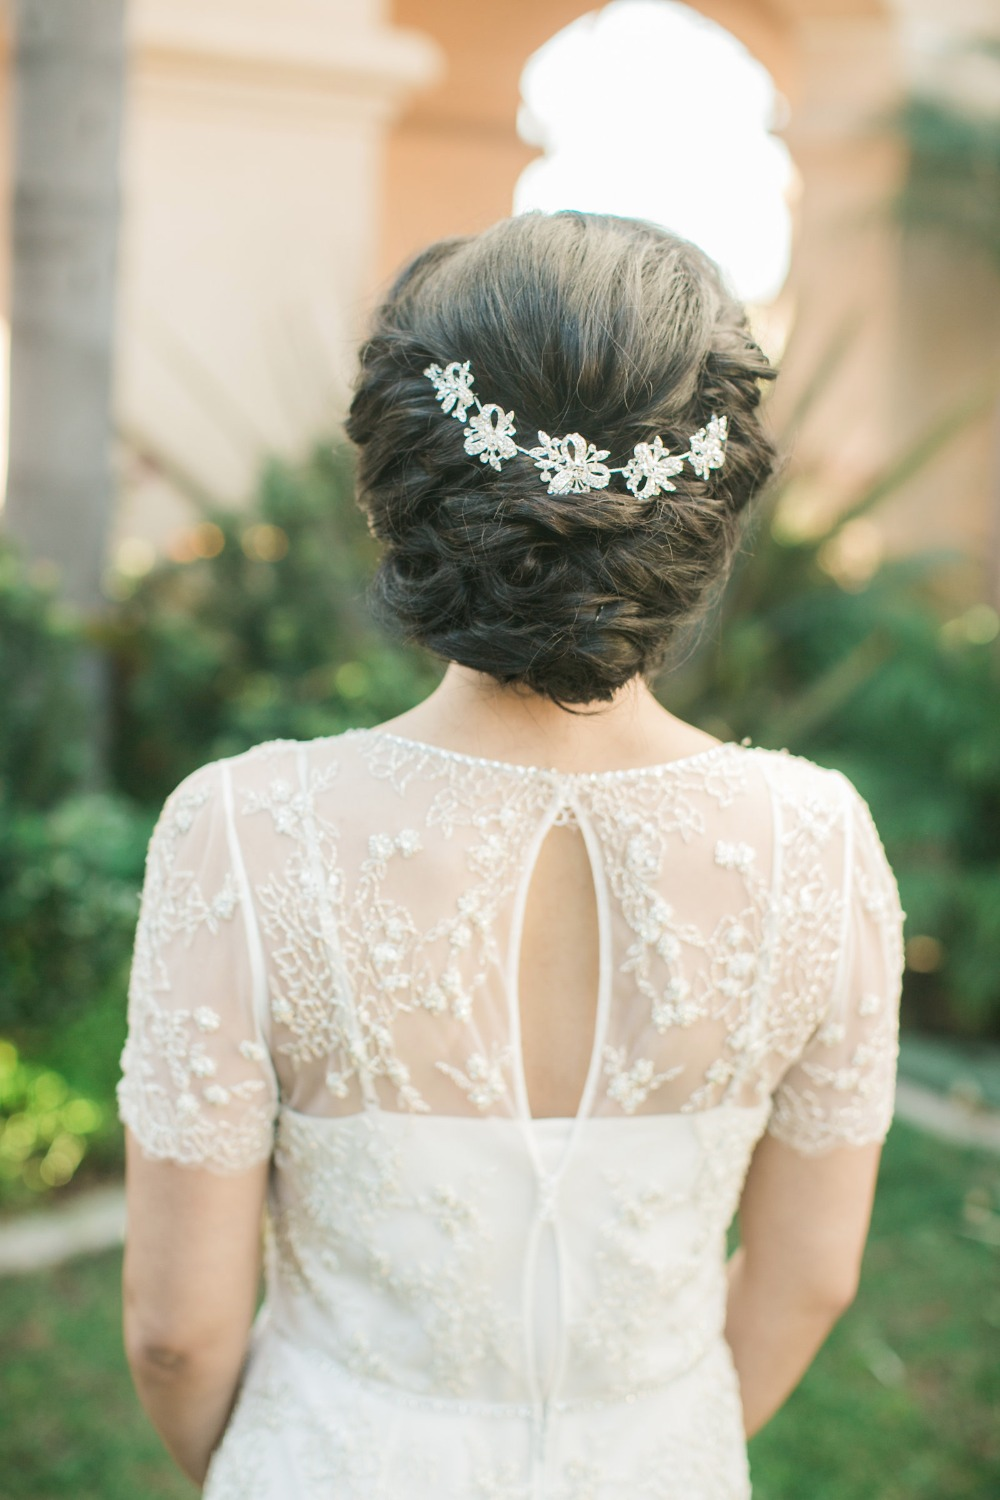 Romantic wedding hair idea